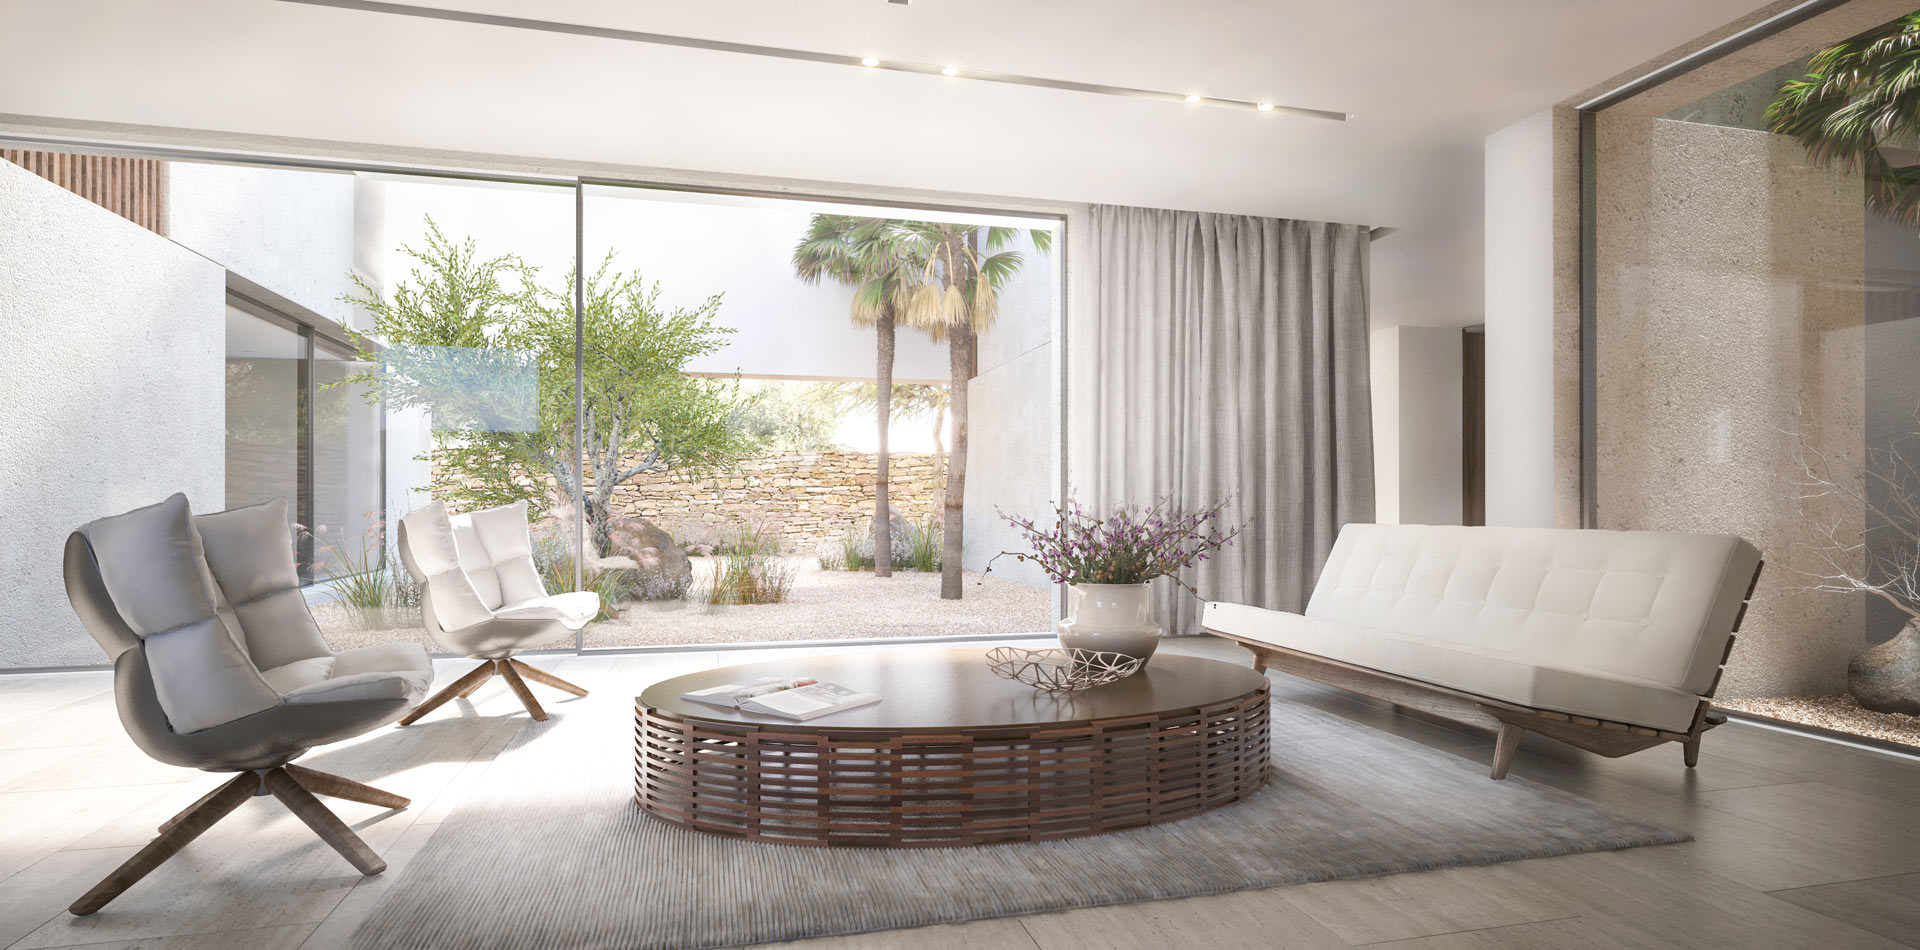 3D Visualisation 3ds max Terri Brown Architecture Dubai Middle East Arid Interior Design Vray